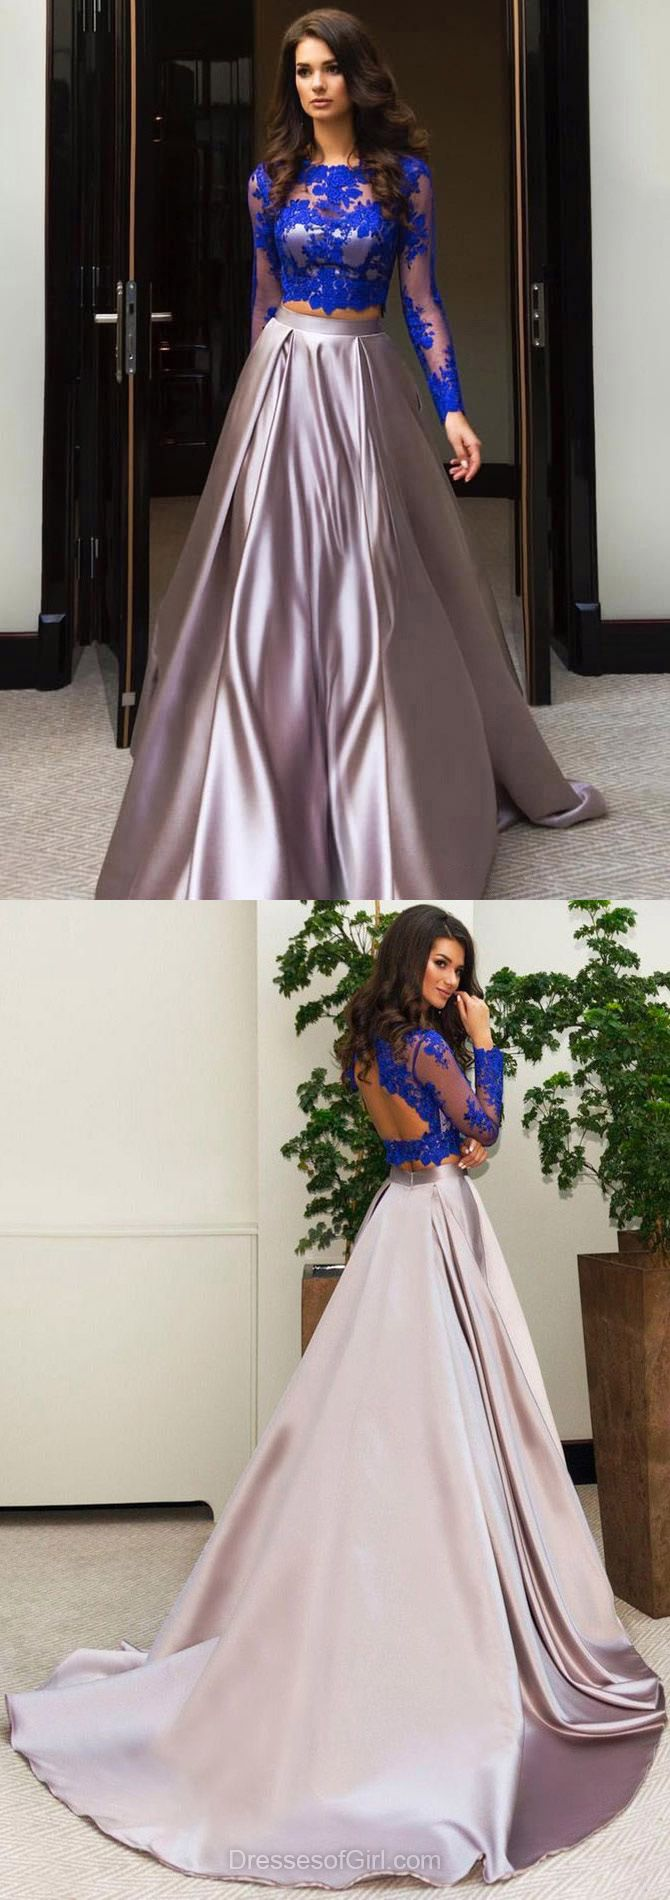 Modest ball gown formal dresses scalloped neck tulle elastic woven